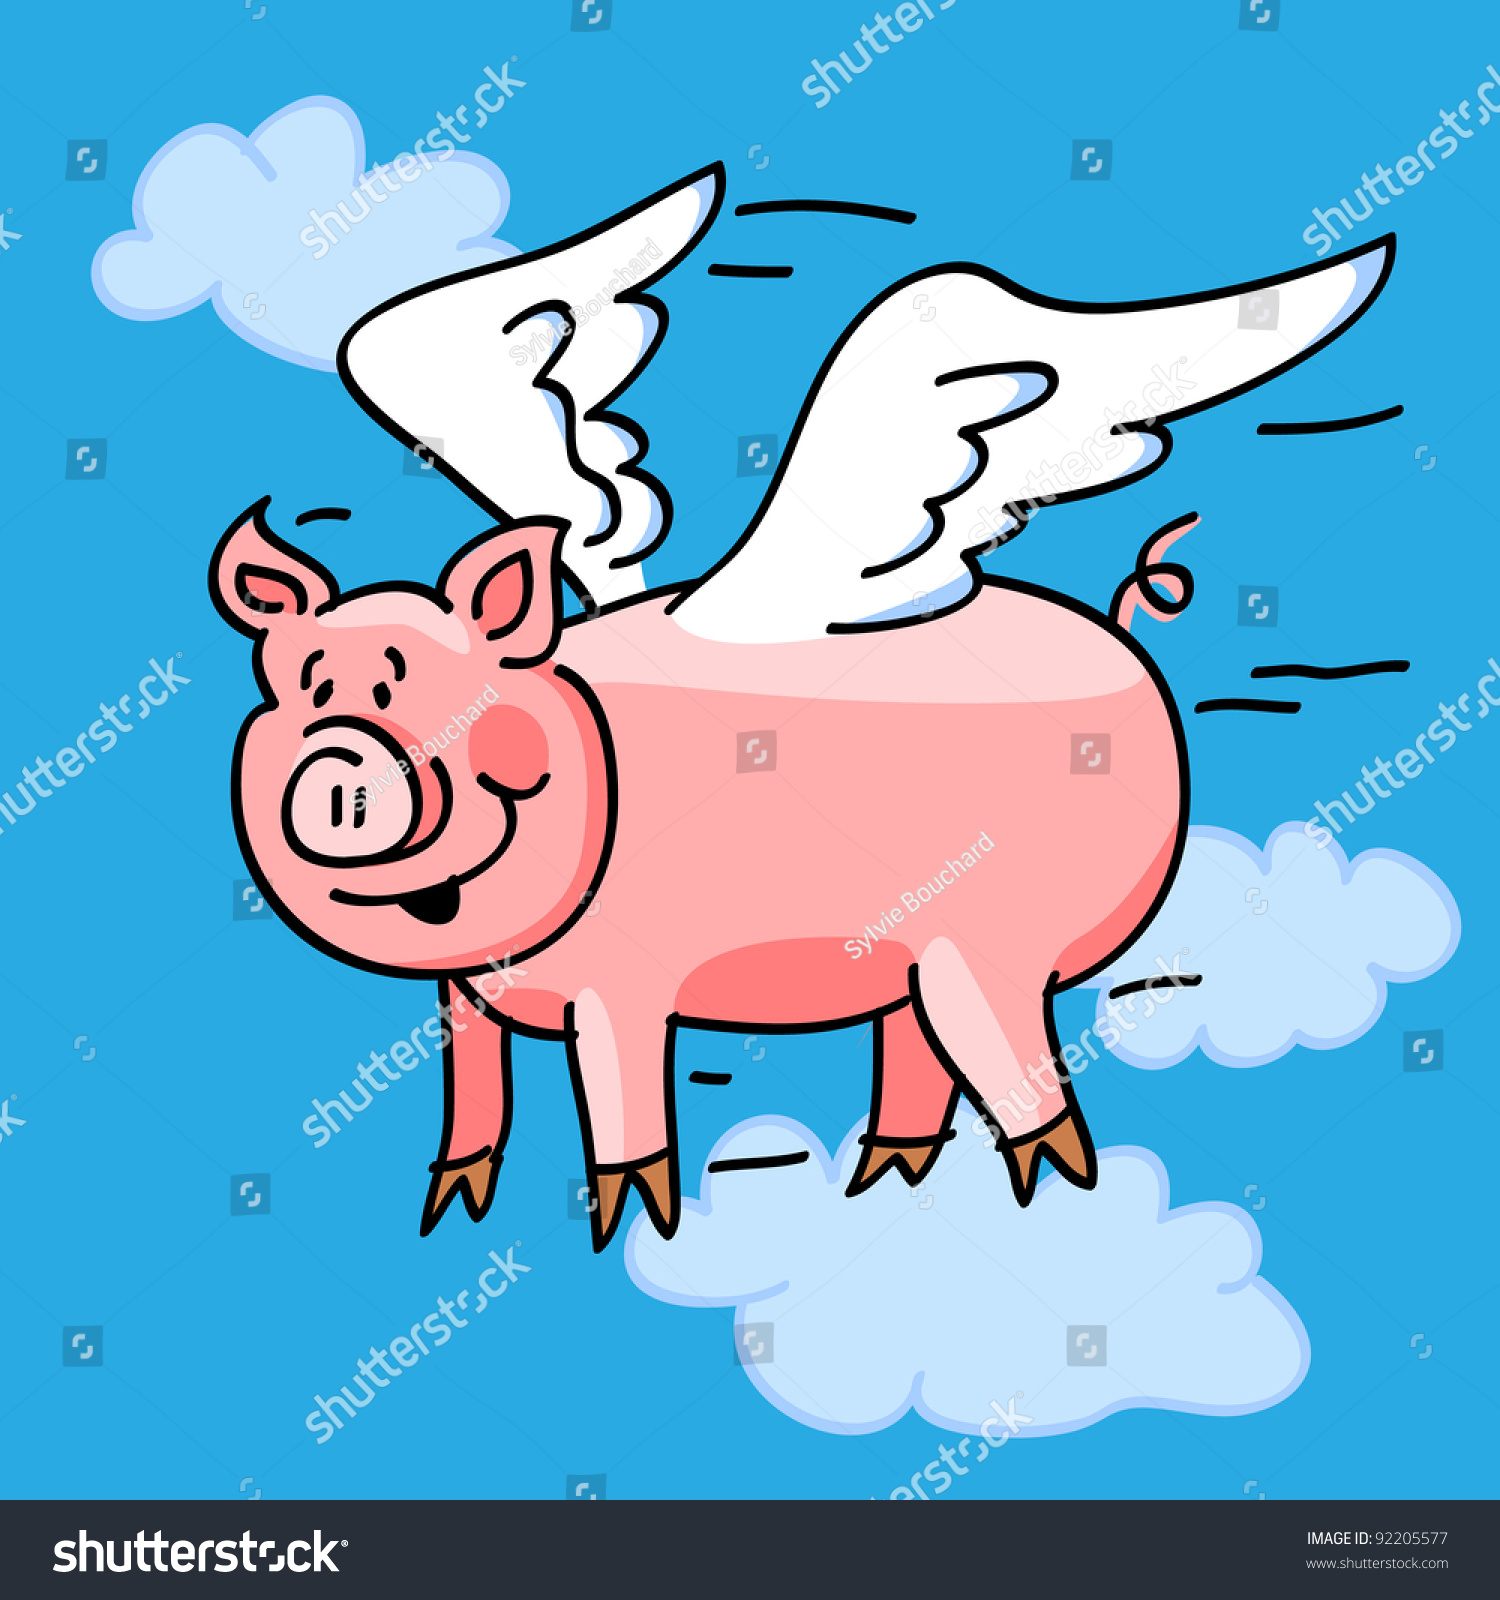 """Fun Cartoon Of A Flying Pig With Wings To Represent The """"When Pigs Fly ..."""